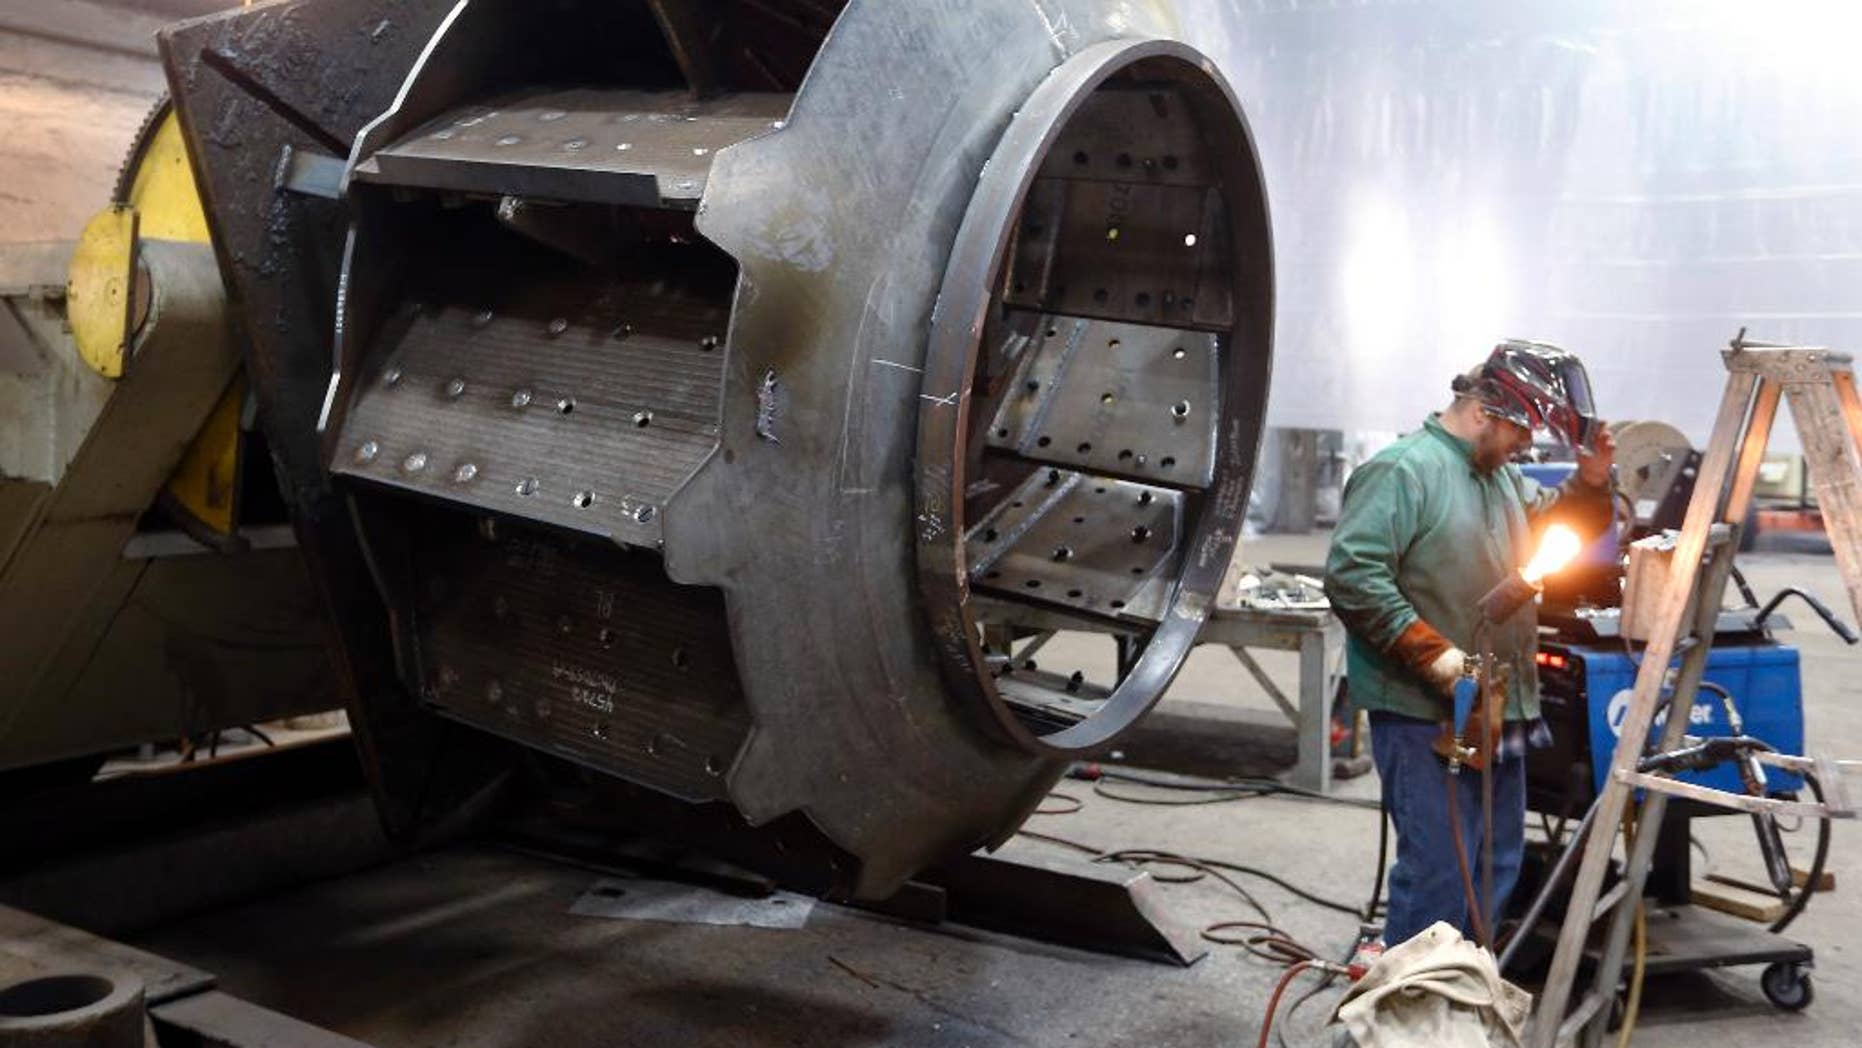 In this photo taken on Thursday, Feb. 12, 2015, a man welds parts in fans for industrial ventilation systems at the Robinson Fans Inc. plant in Harmony, Pa. The Commerce Department releases second-quarter gross domestic product on Thursday, July 30, 2015. (AP Photo/Keith Srakocic)